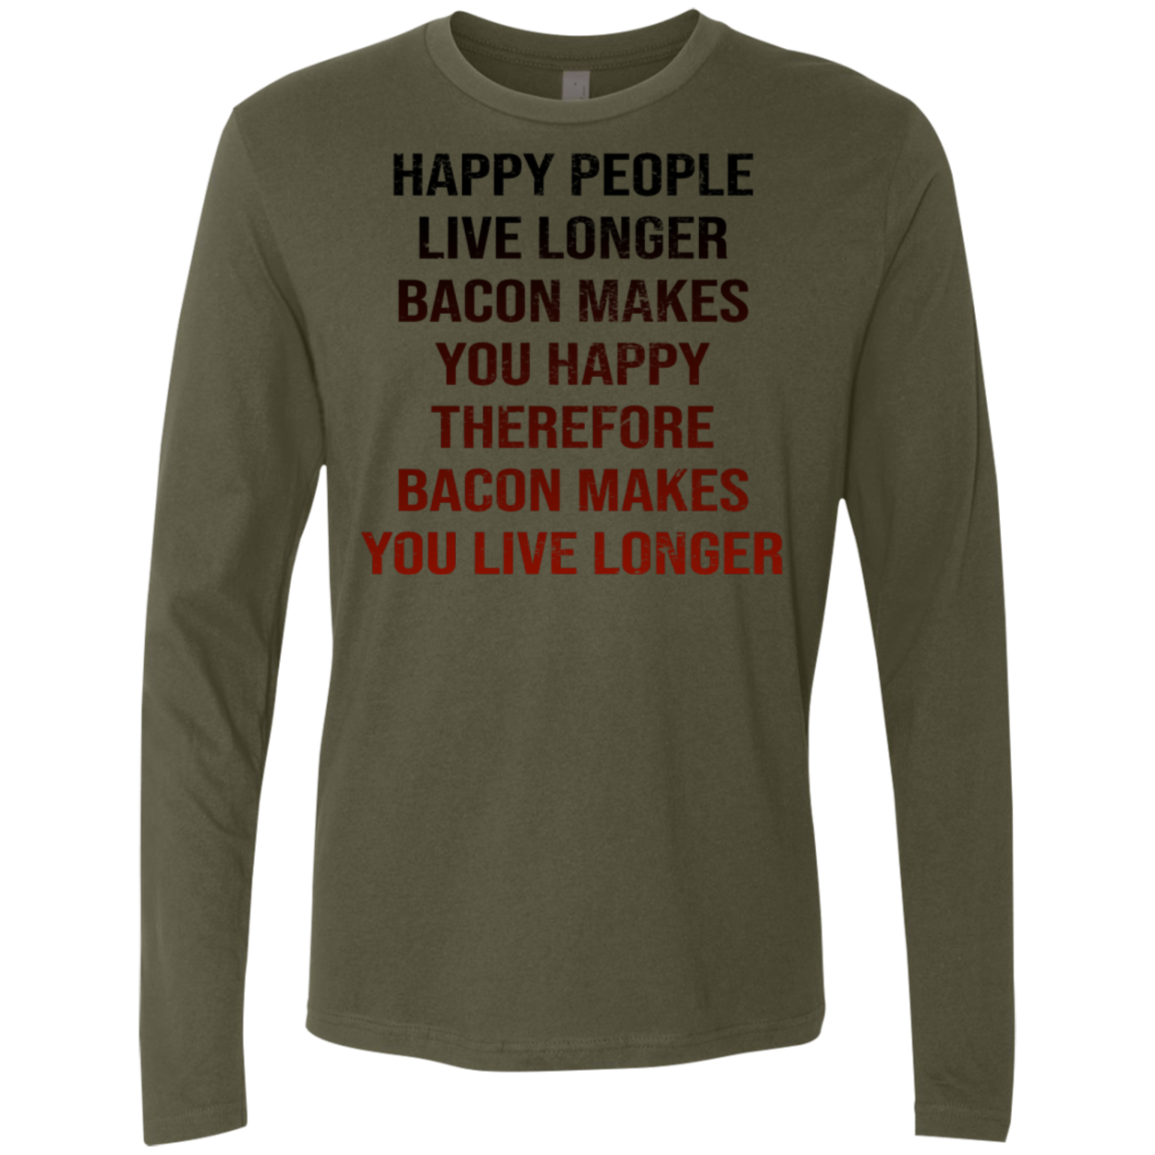 Happy People Live Longer Bacon Makes You Happy Therefore Bacon Makes You Live Longer Men's Long Sleeve Tee